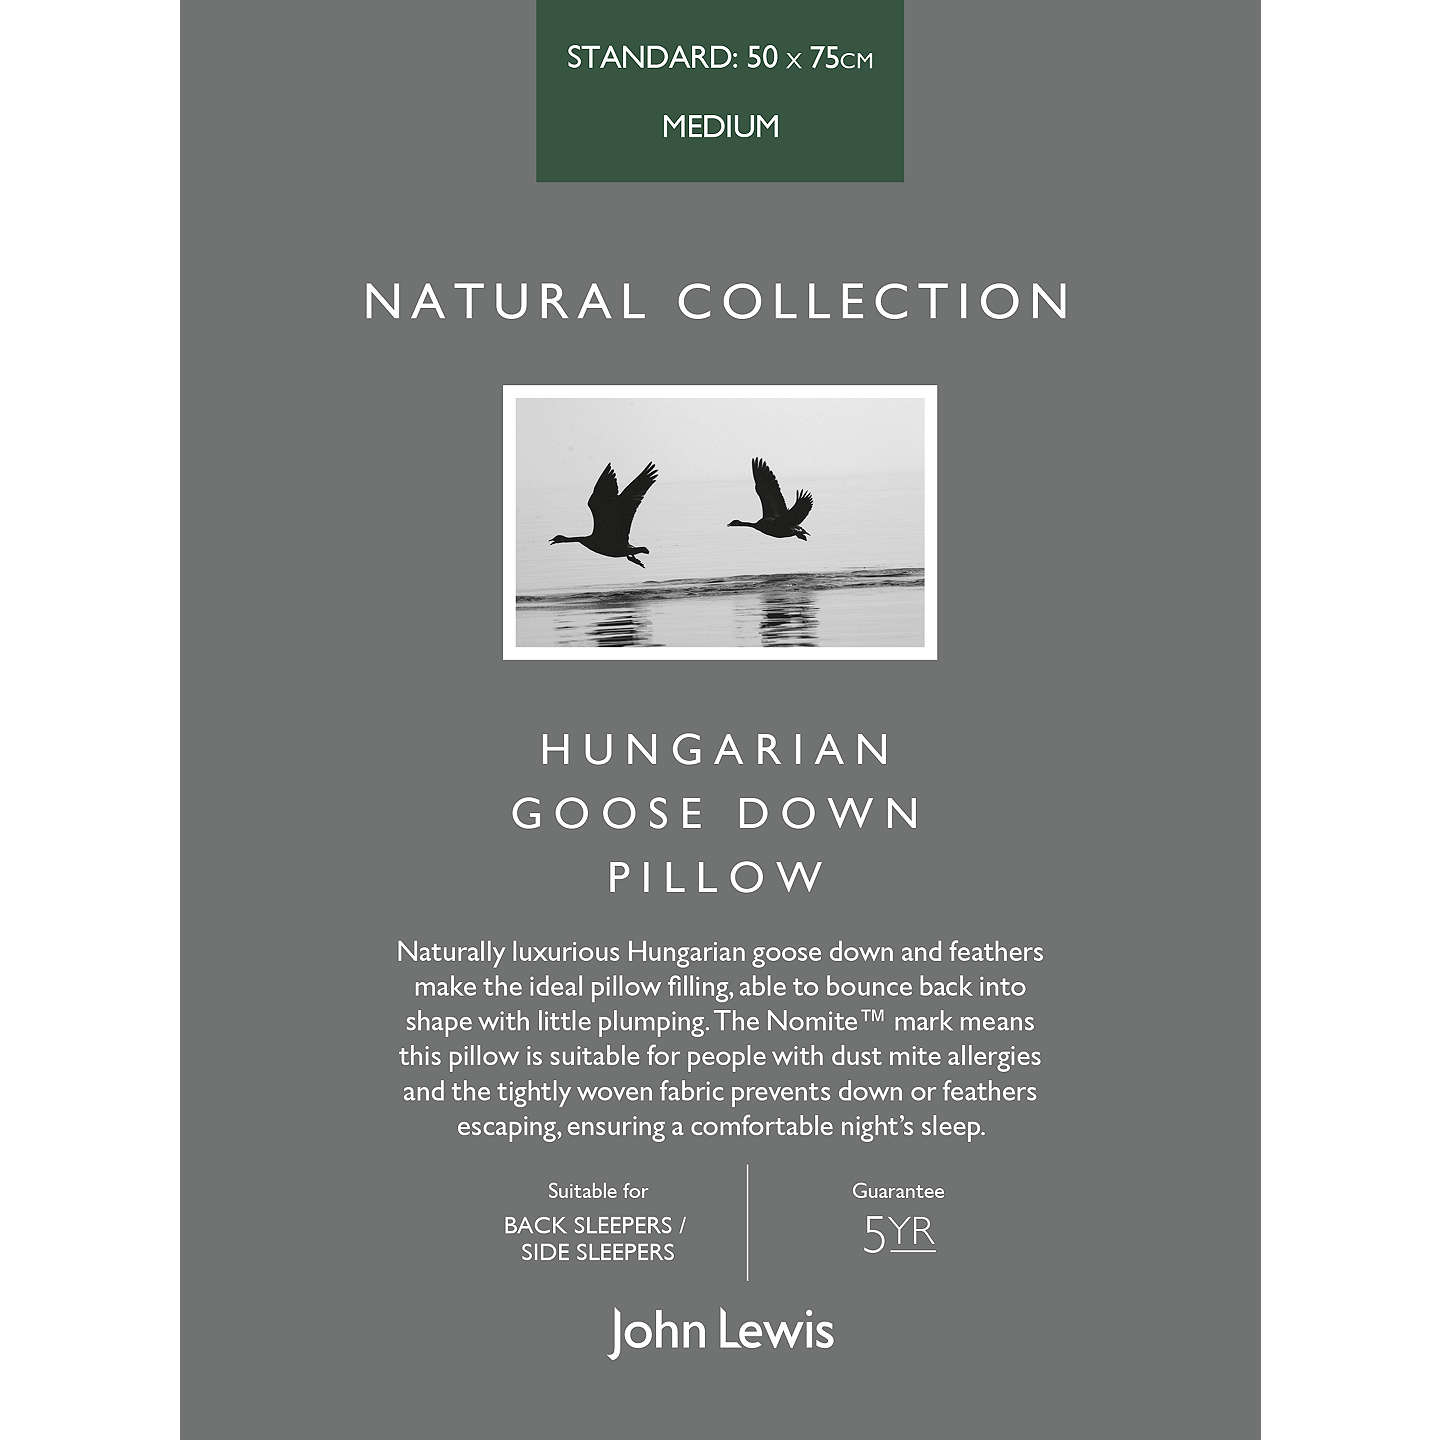 BuyJohn Lewis Natural Collection Hungarian Goose Down Standard Pillow, Medium Online at johnlewis.com